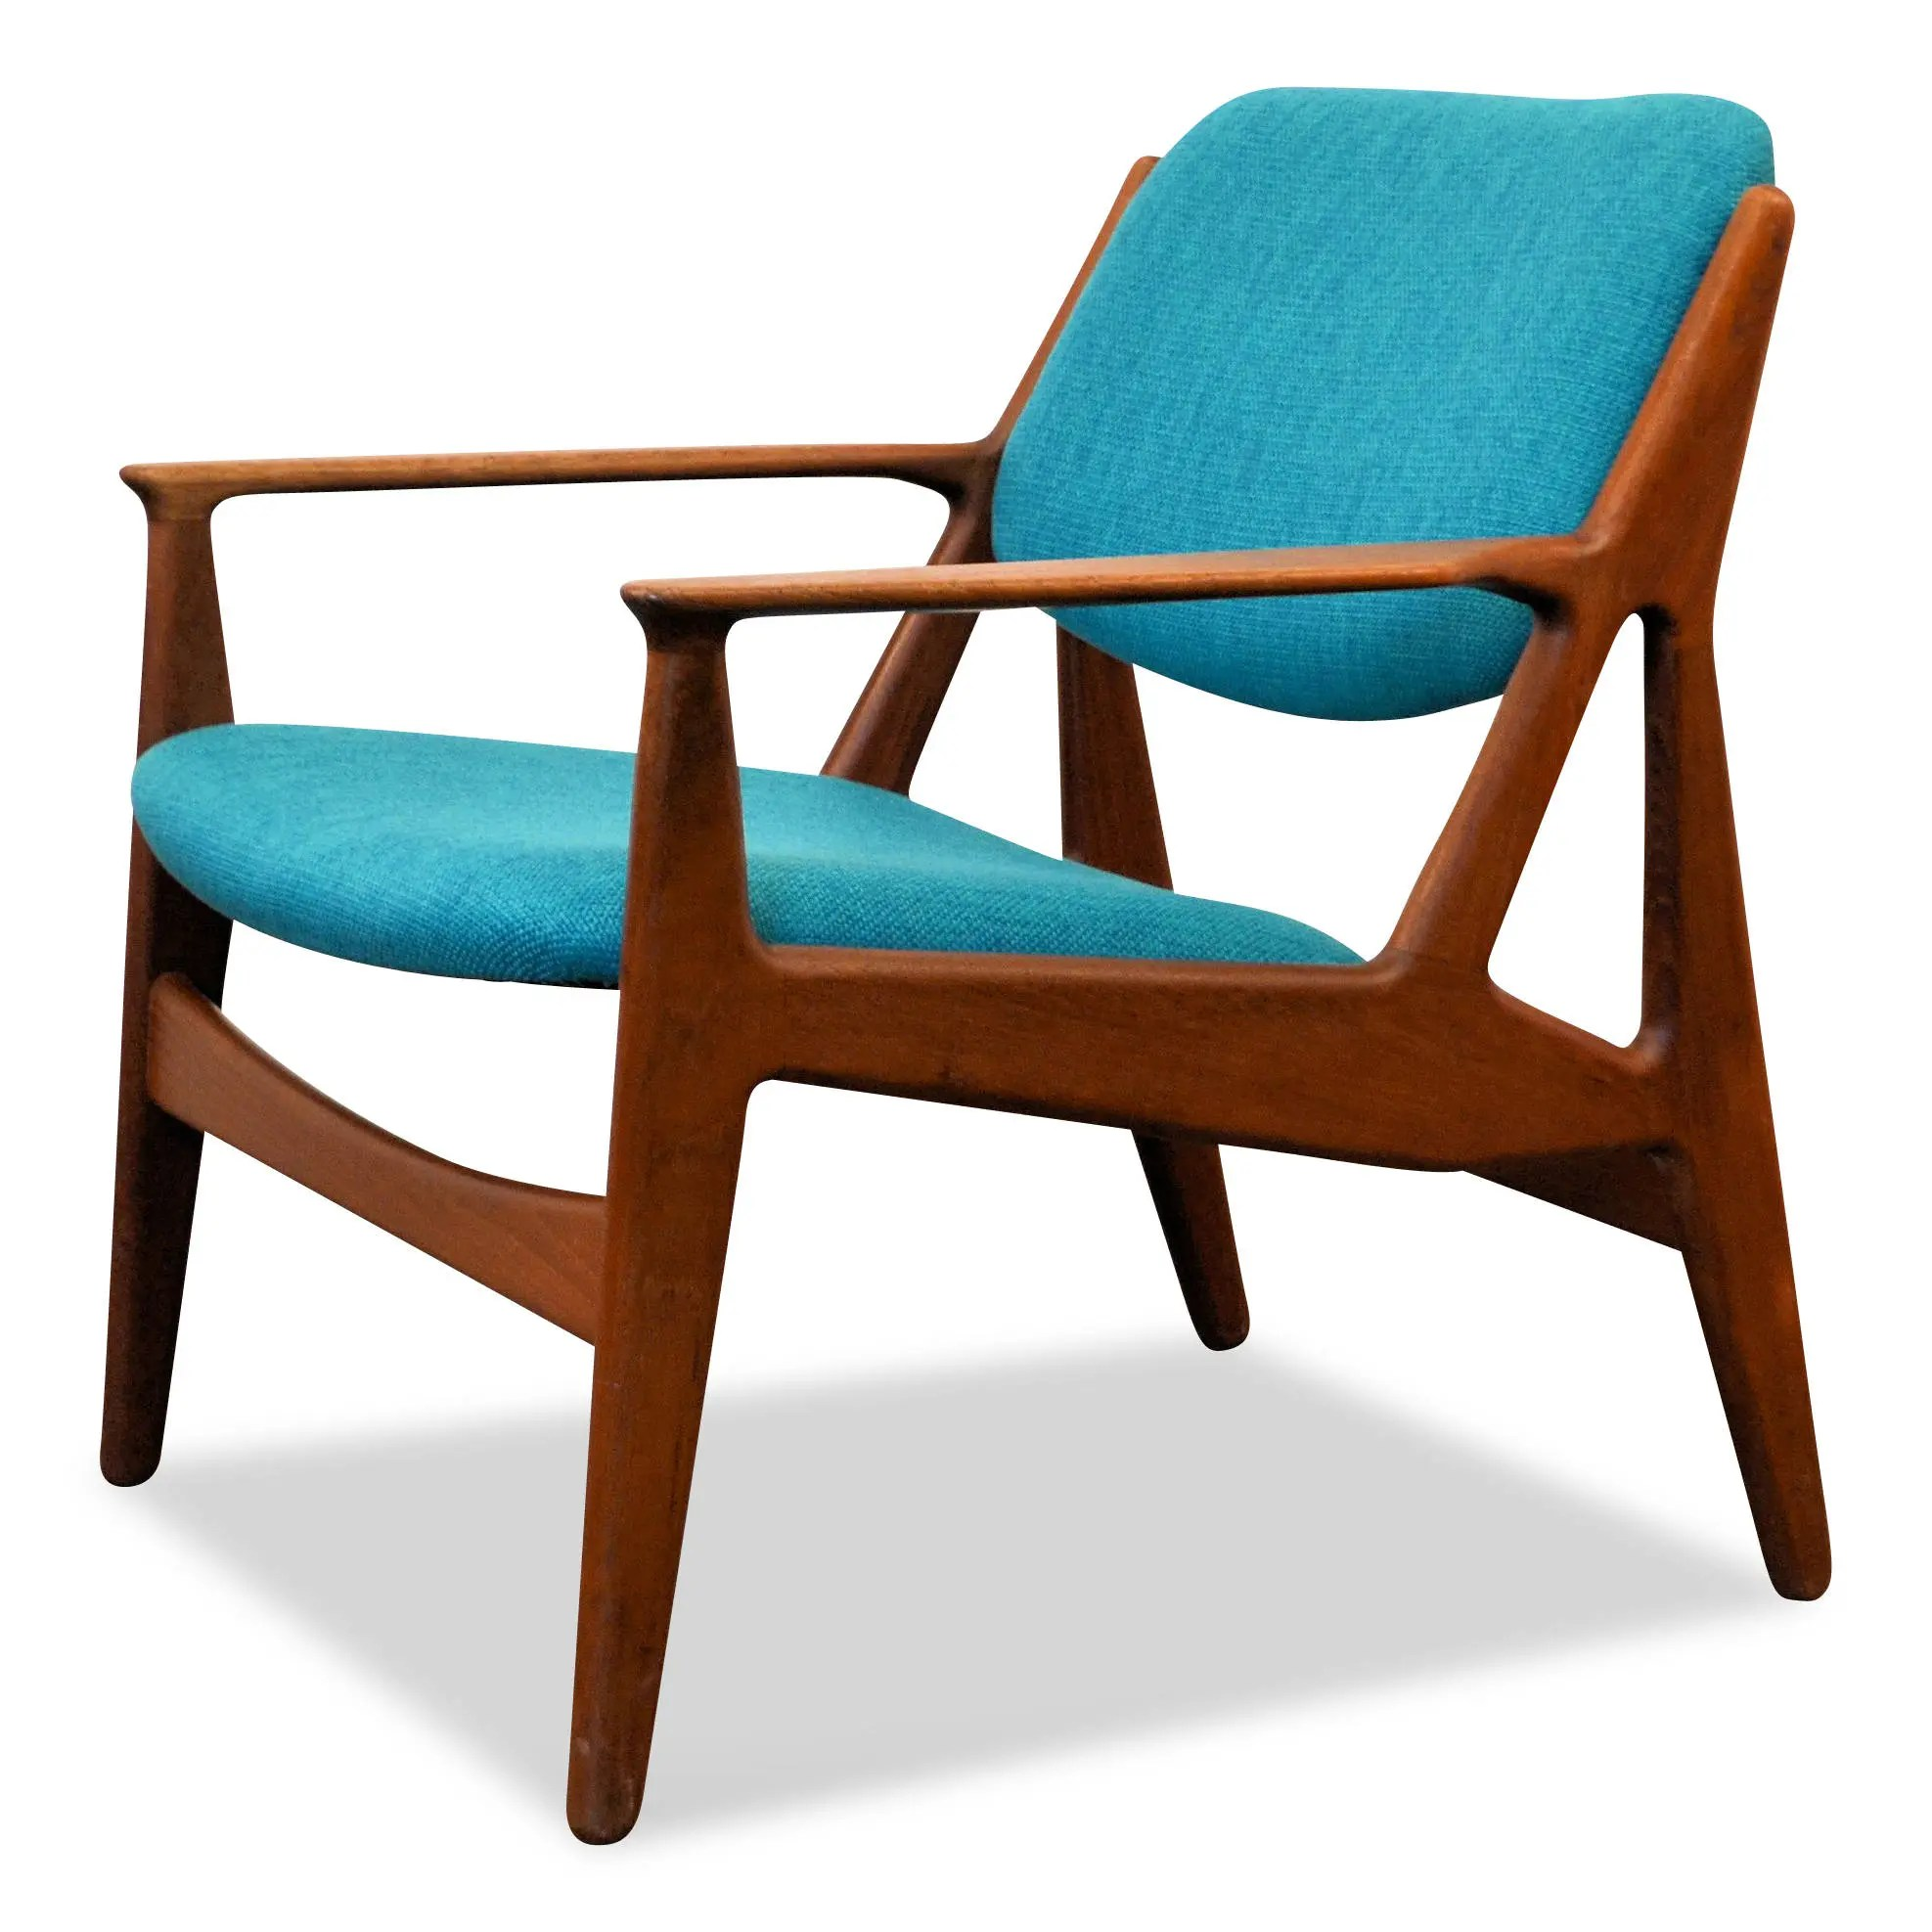 Arne Vodder Sessel Vintage Teak Danish Design Arne Vodder Sessel